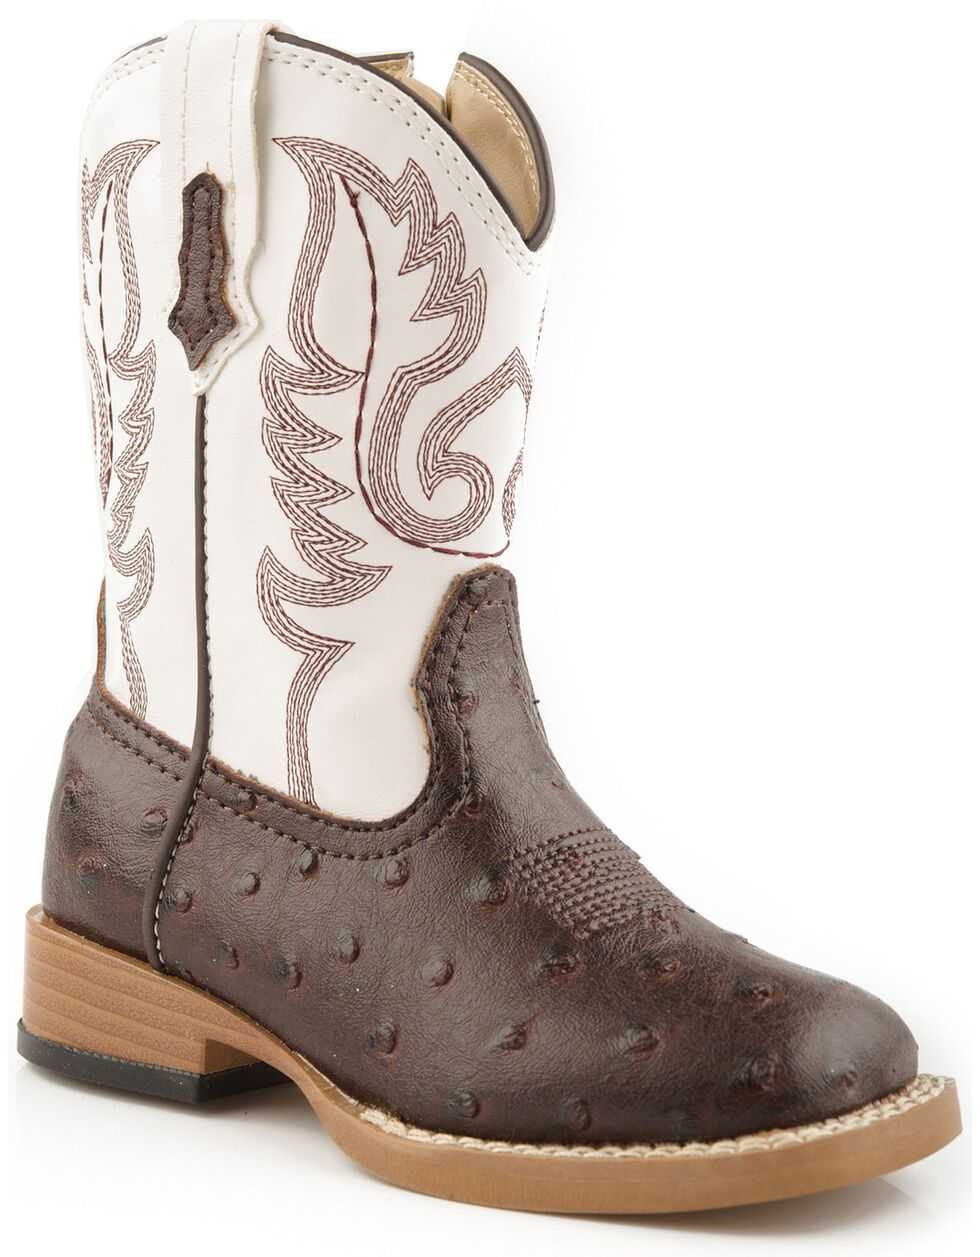 Roper Toddler Girls' Faux Ostrich Cowboy Boots - Square Toe, Brown, hi-res